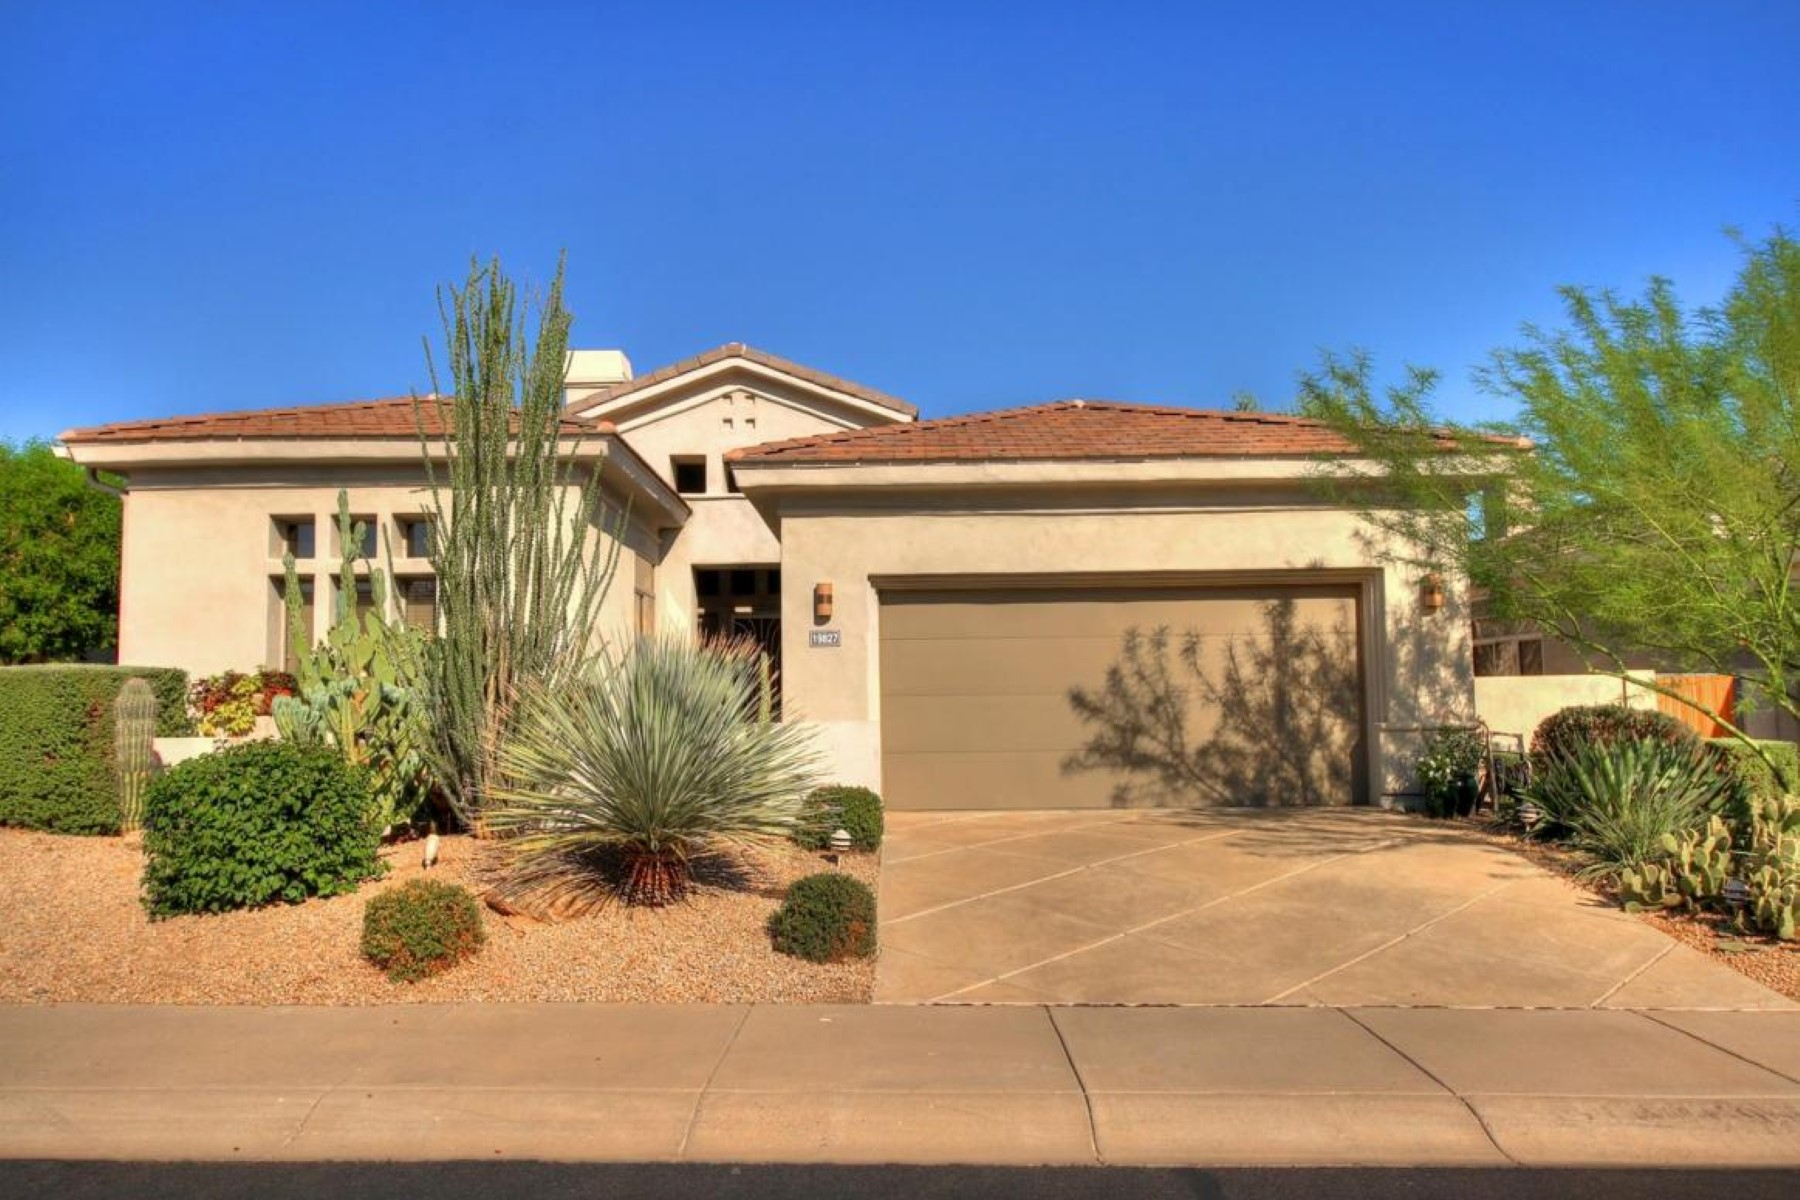 Vivienda unifamiliar por un Venta en Rarely available dual master floor plan in gated Monterey at Grayhawk 19827 N 84th St Scottsdale, Arizona 85255 Estados Unidos